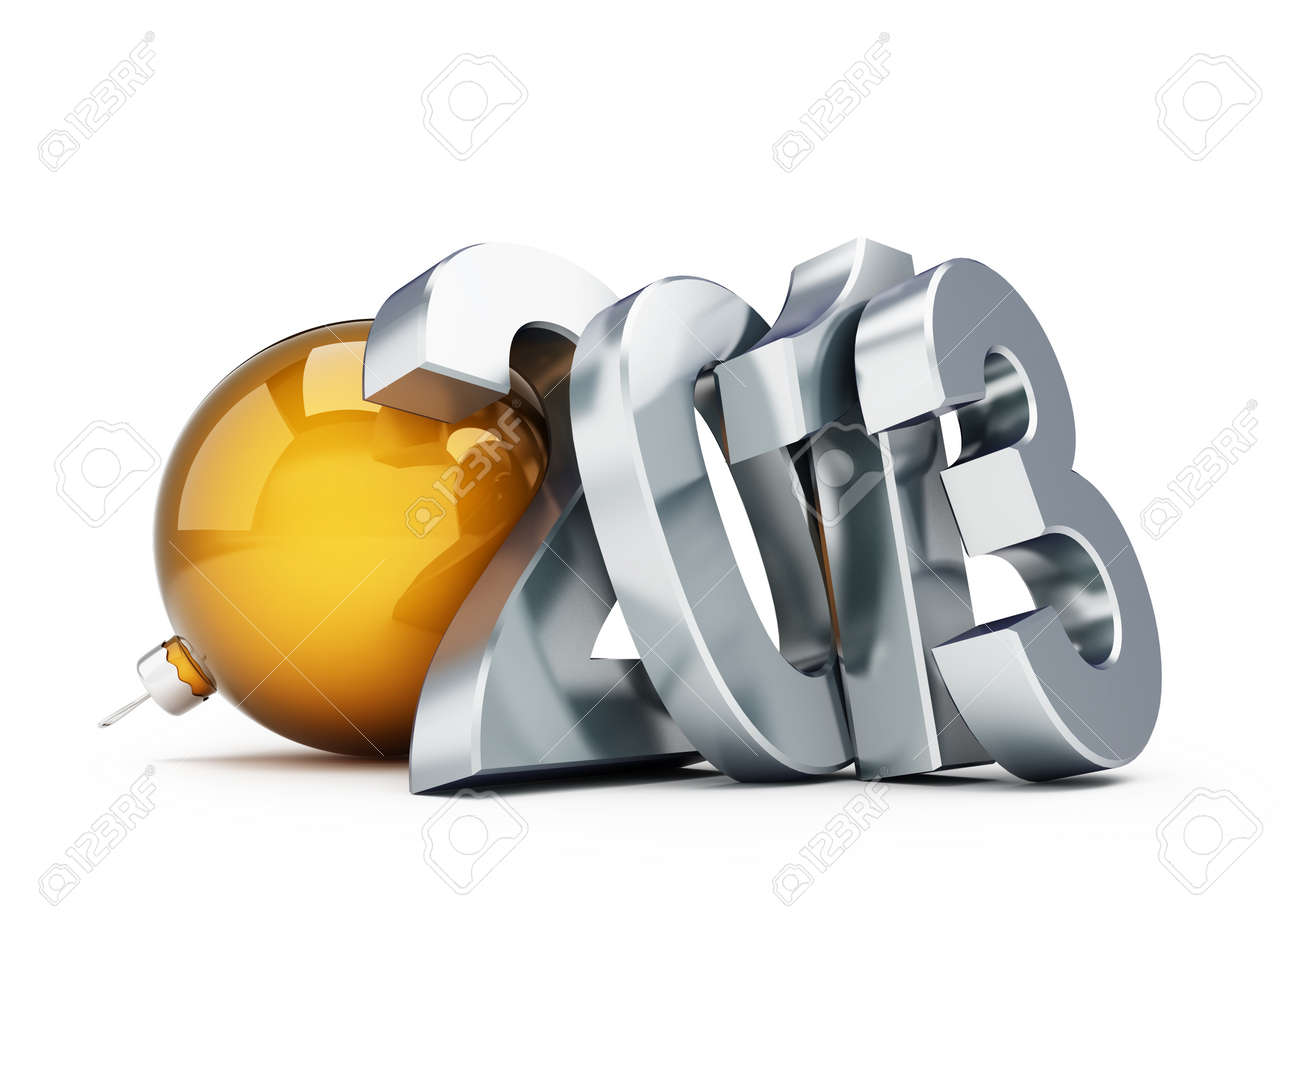 happy new year 2013 on a white background Stock Photo - 13871269